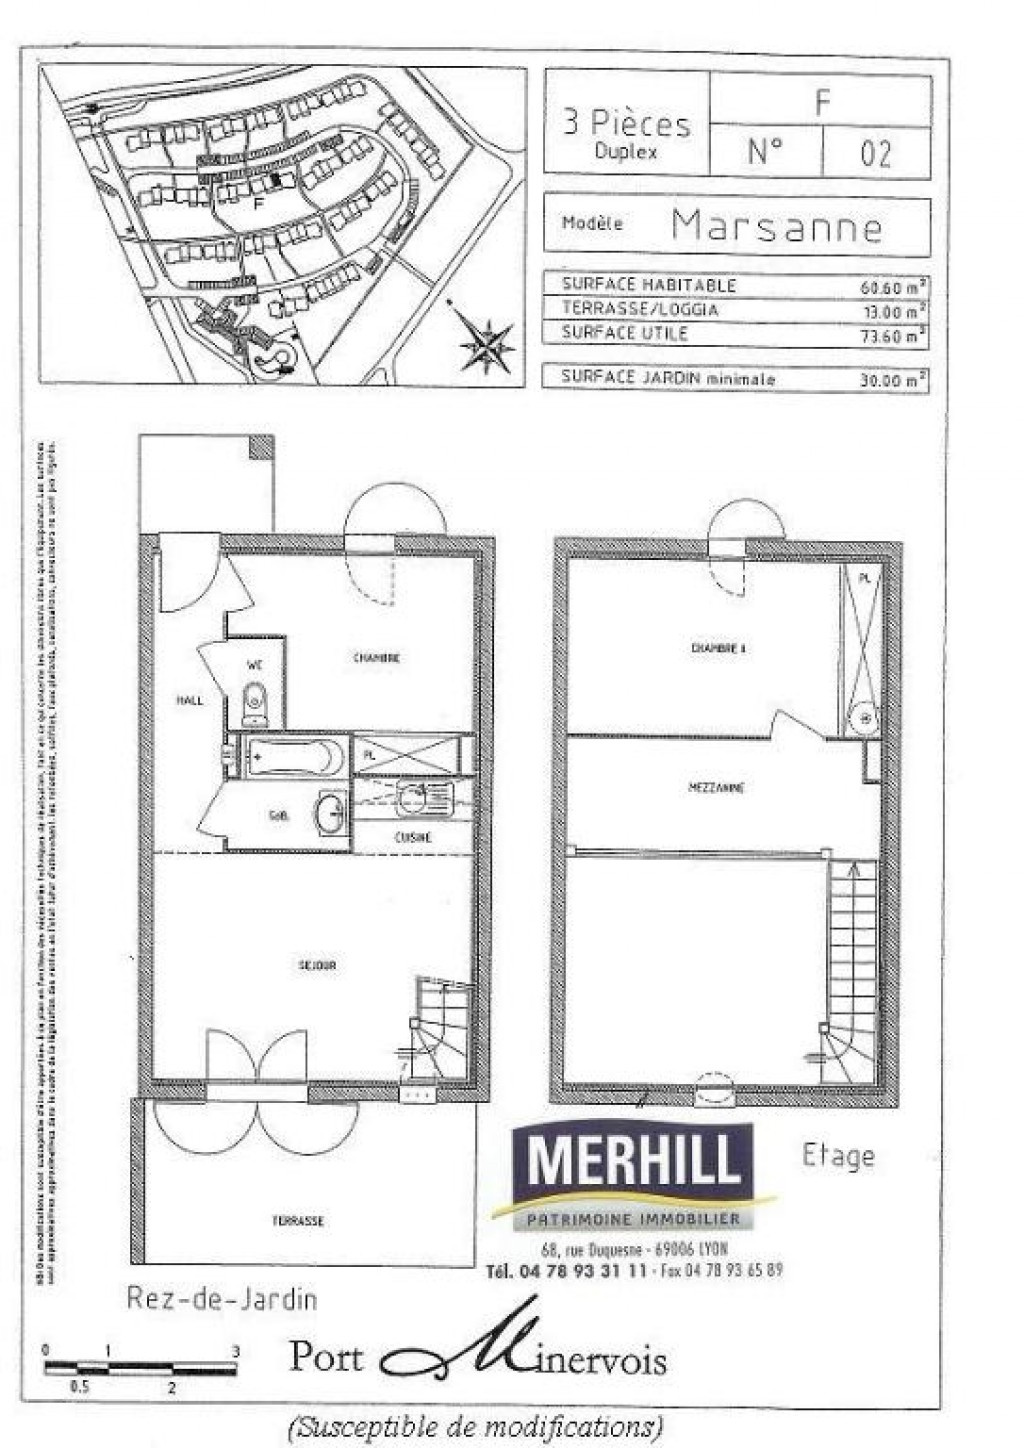 HOMPS - Port Minervois - Plan - Villa Lot F 02